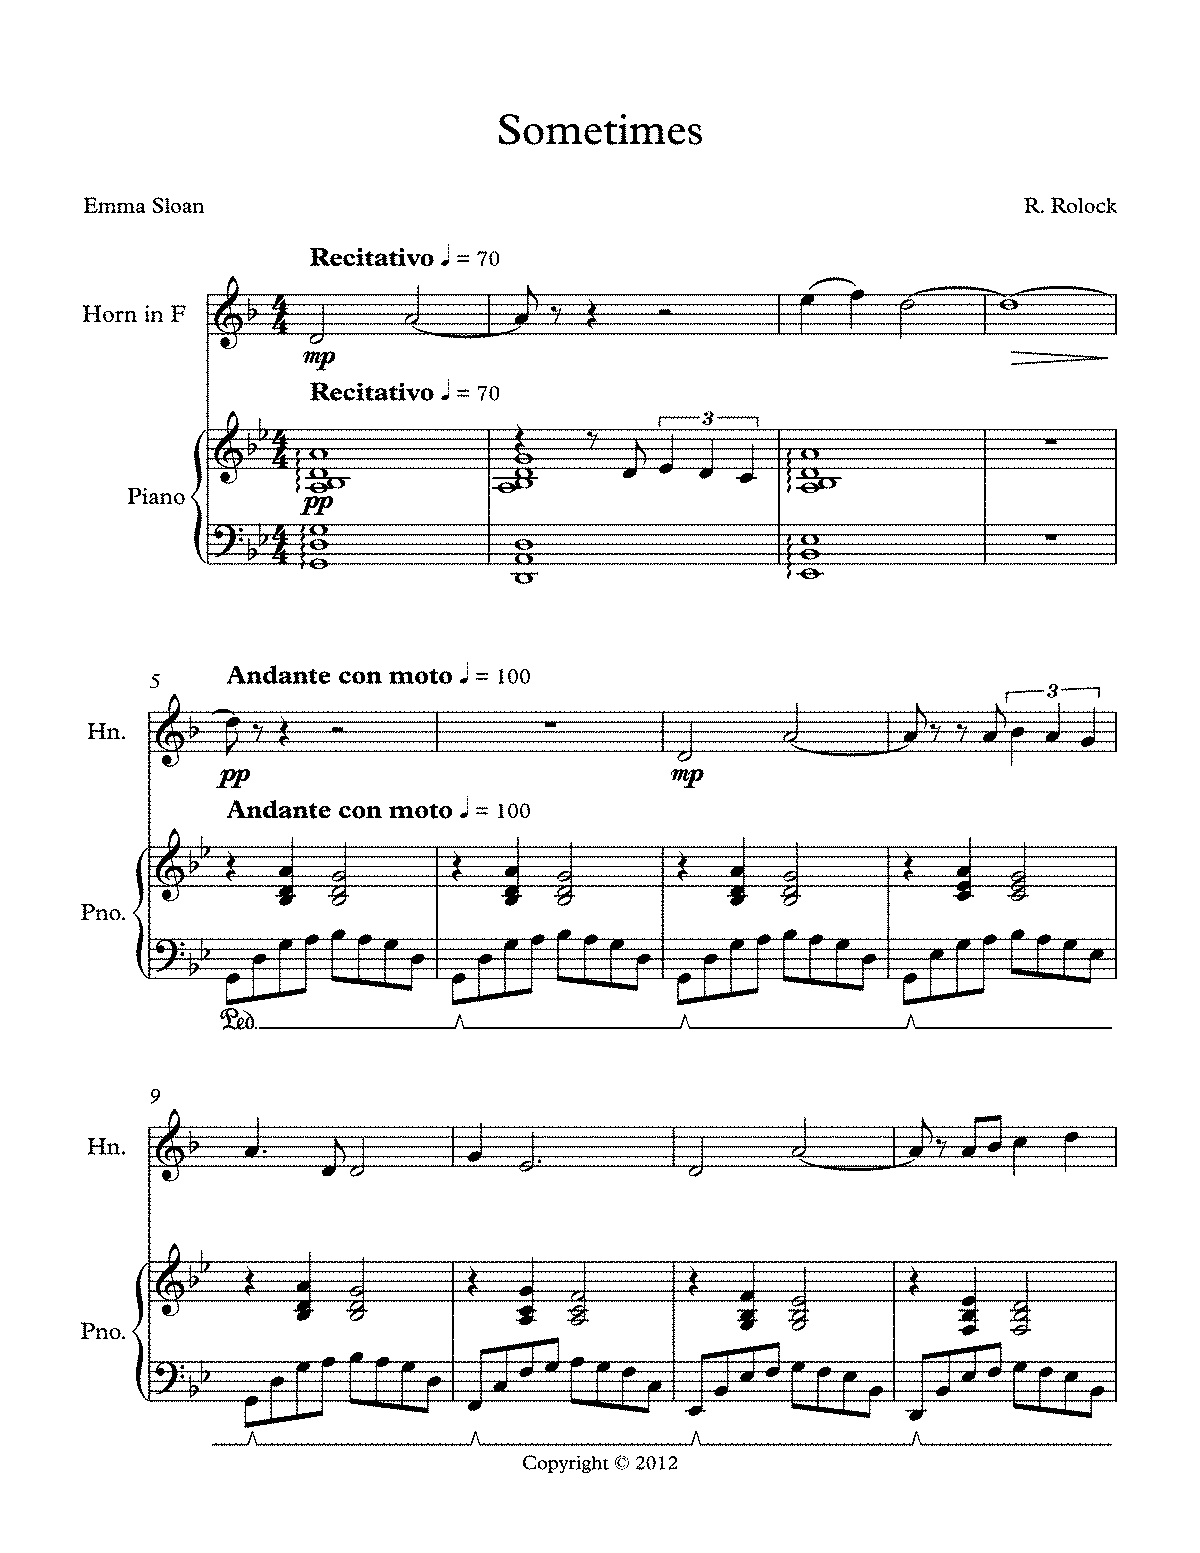 PMLP449519-Sometimes French Horn.pdf